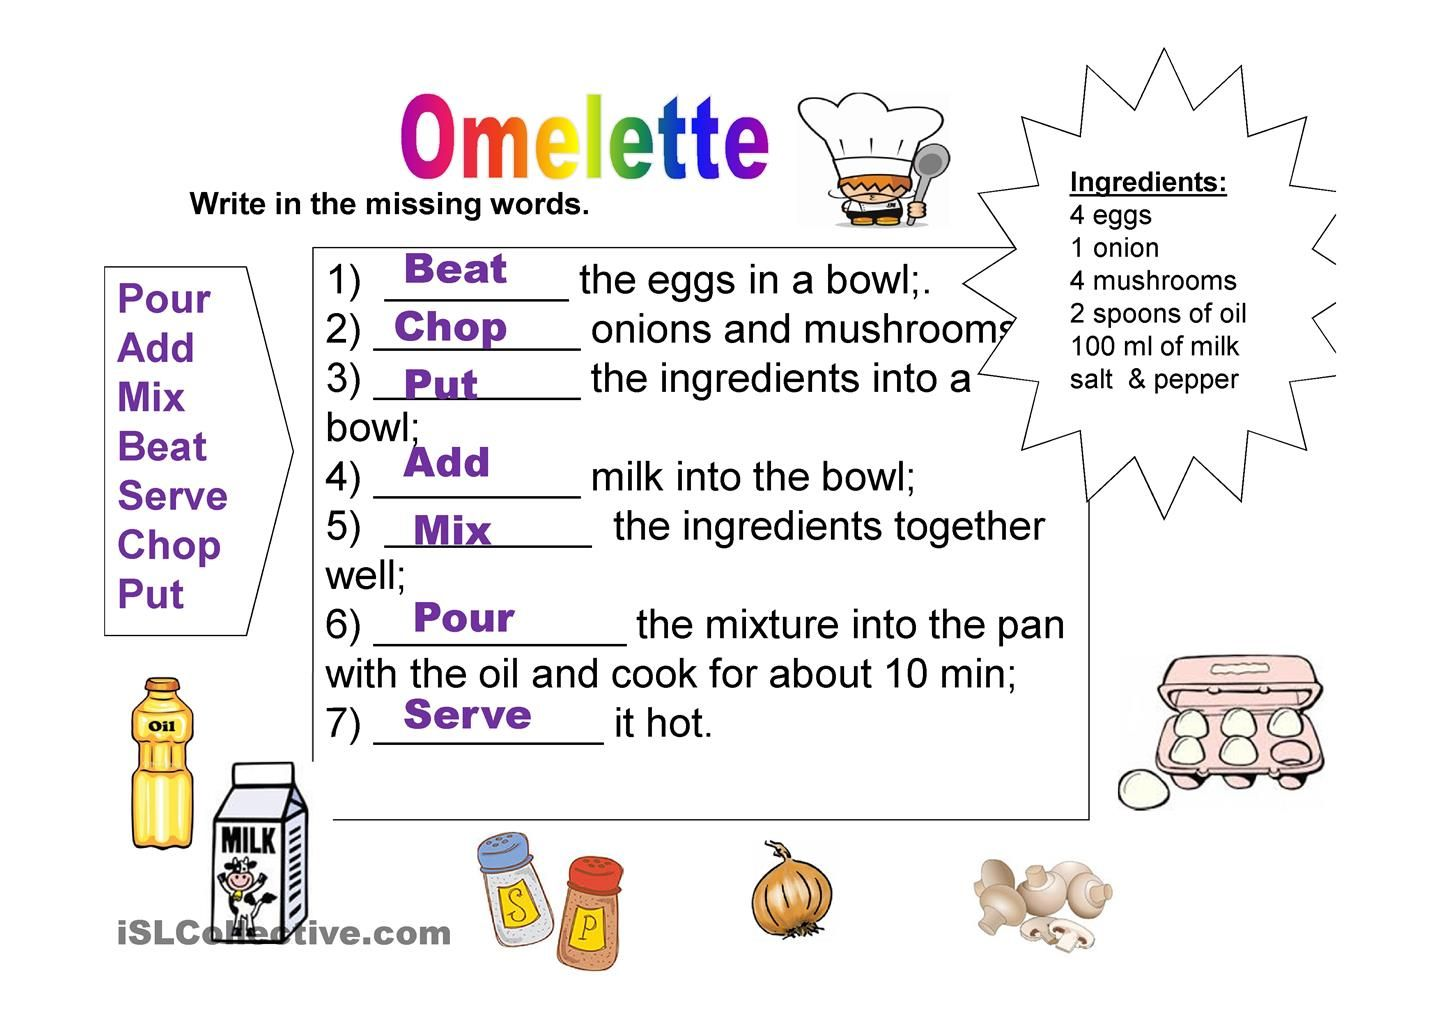 Omelette Recipe Omelette Recipe How To Cook Omelette How To Make Omelette